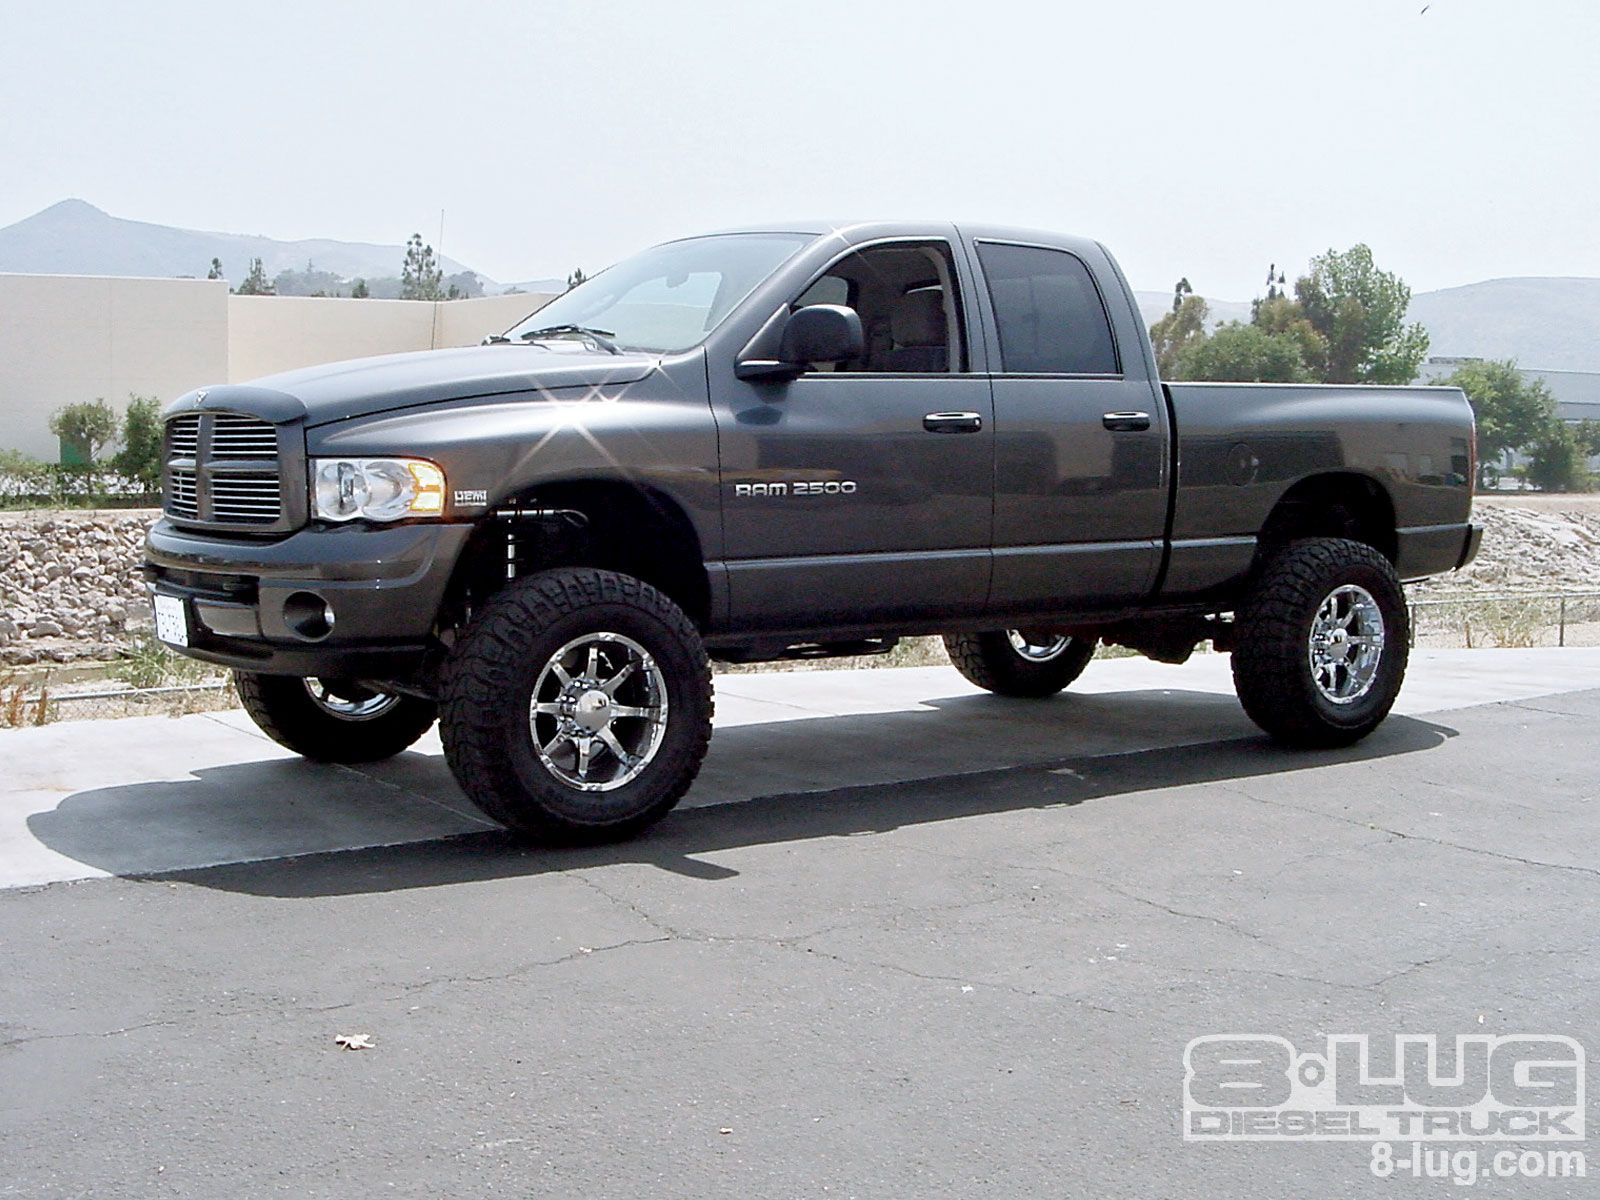 The new readylift front leveling kit 66 1113 is designed to fit the dodge ram